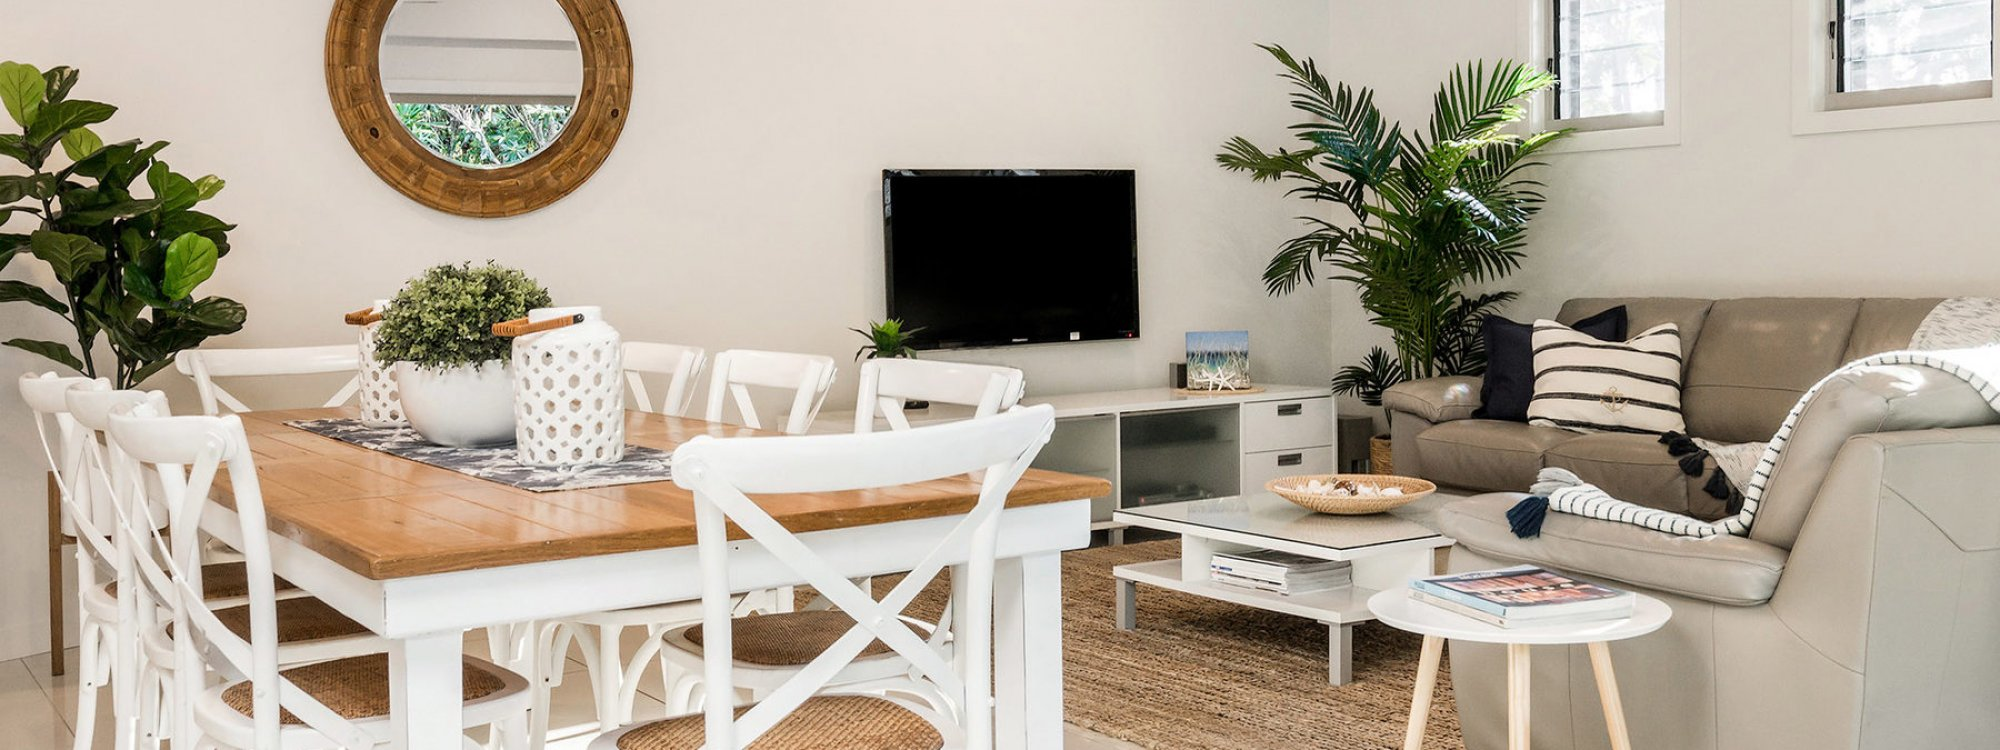 Byron Beach Style - Byron Bay - Dining and Lounge